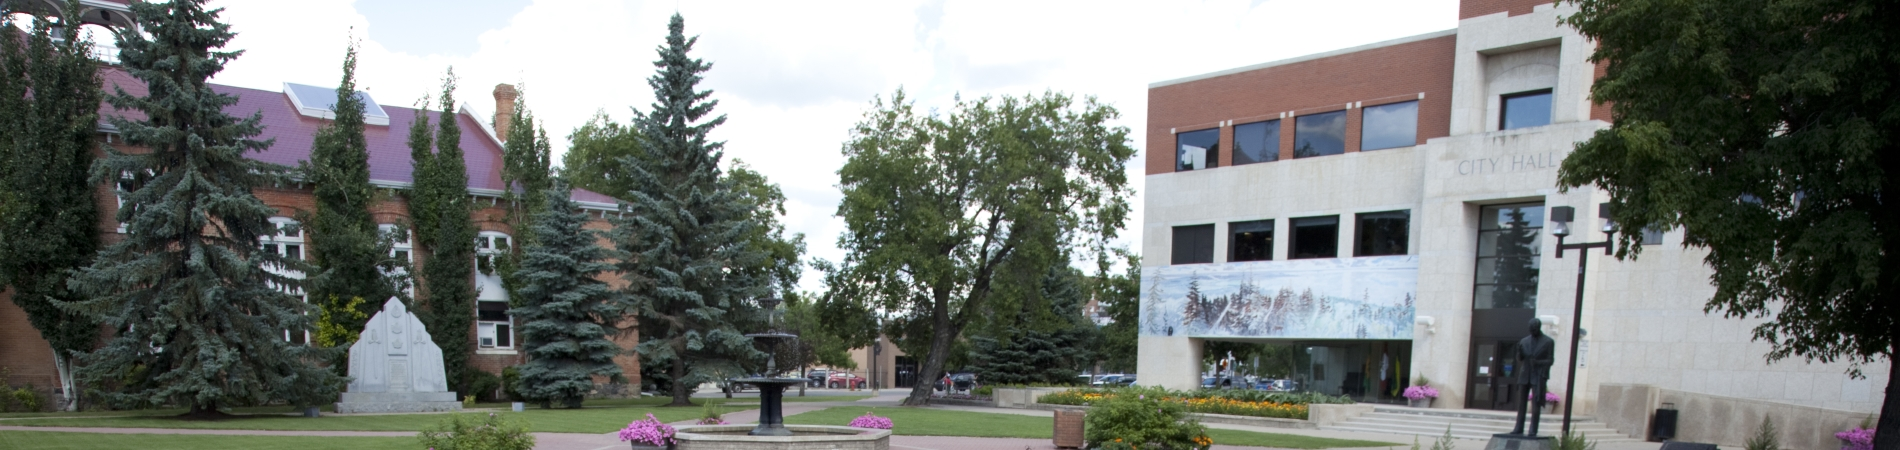 A view of City Hall and Memorial Square in Prince Albert